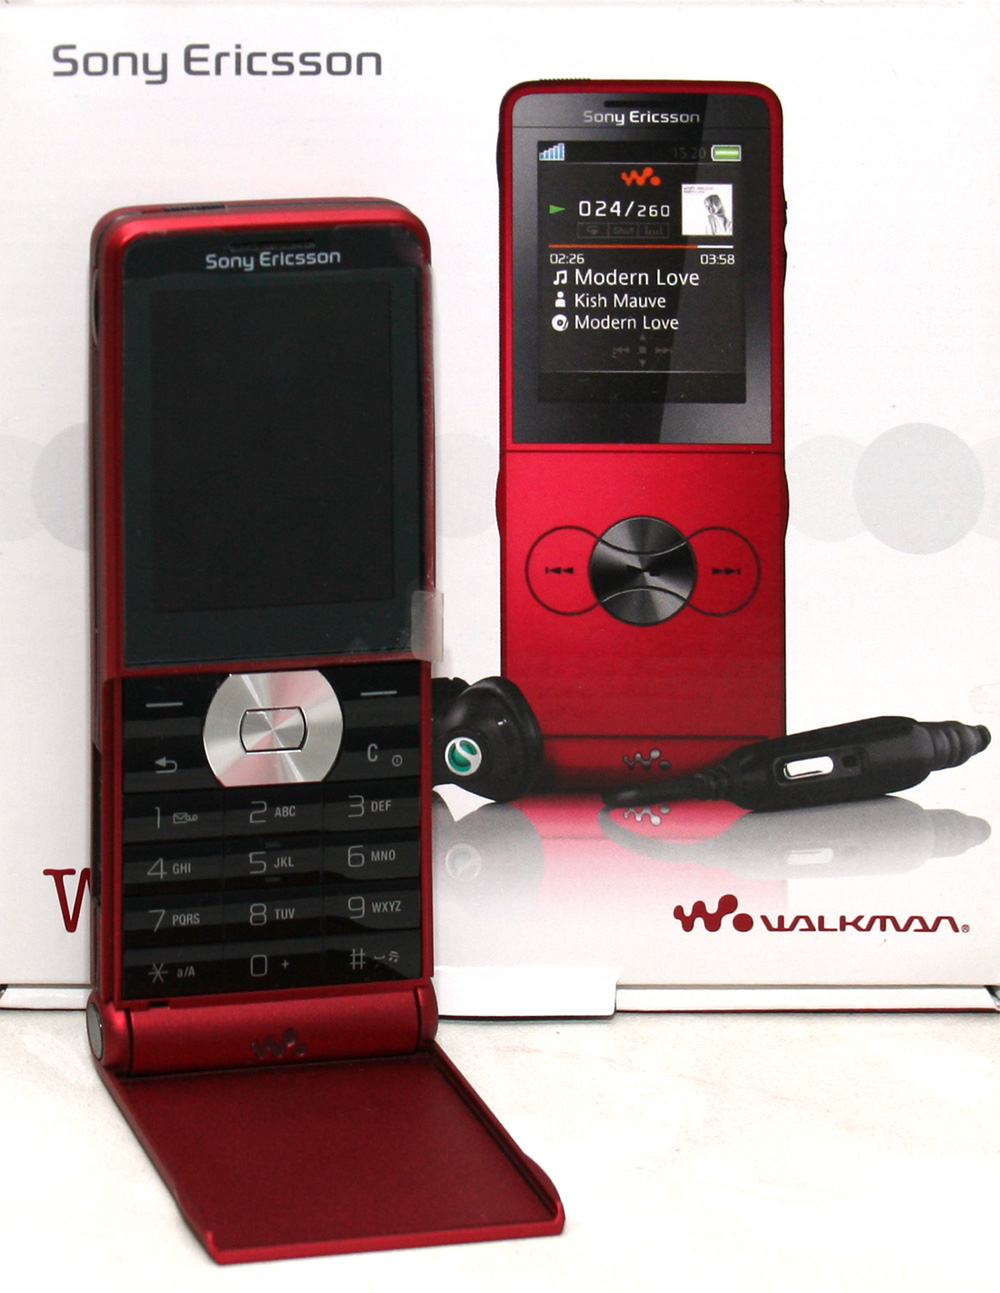 sony ericsson walkman w350i turbo red ohne simlock handy ebay. Black Bedroom Furniture Sets. Home Design Ideas